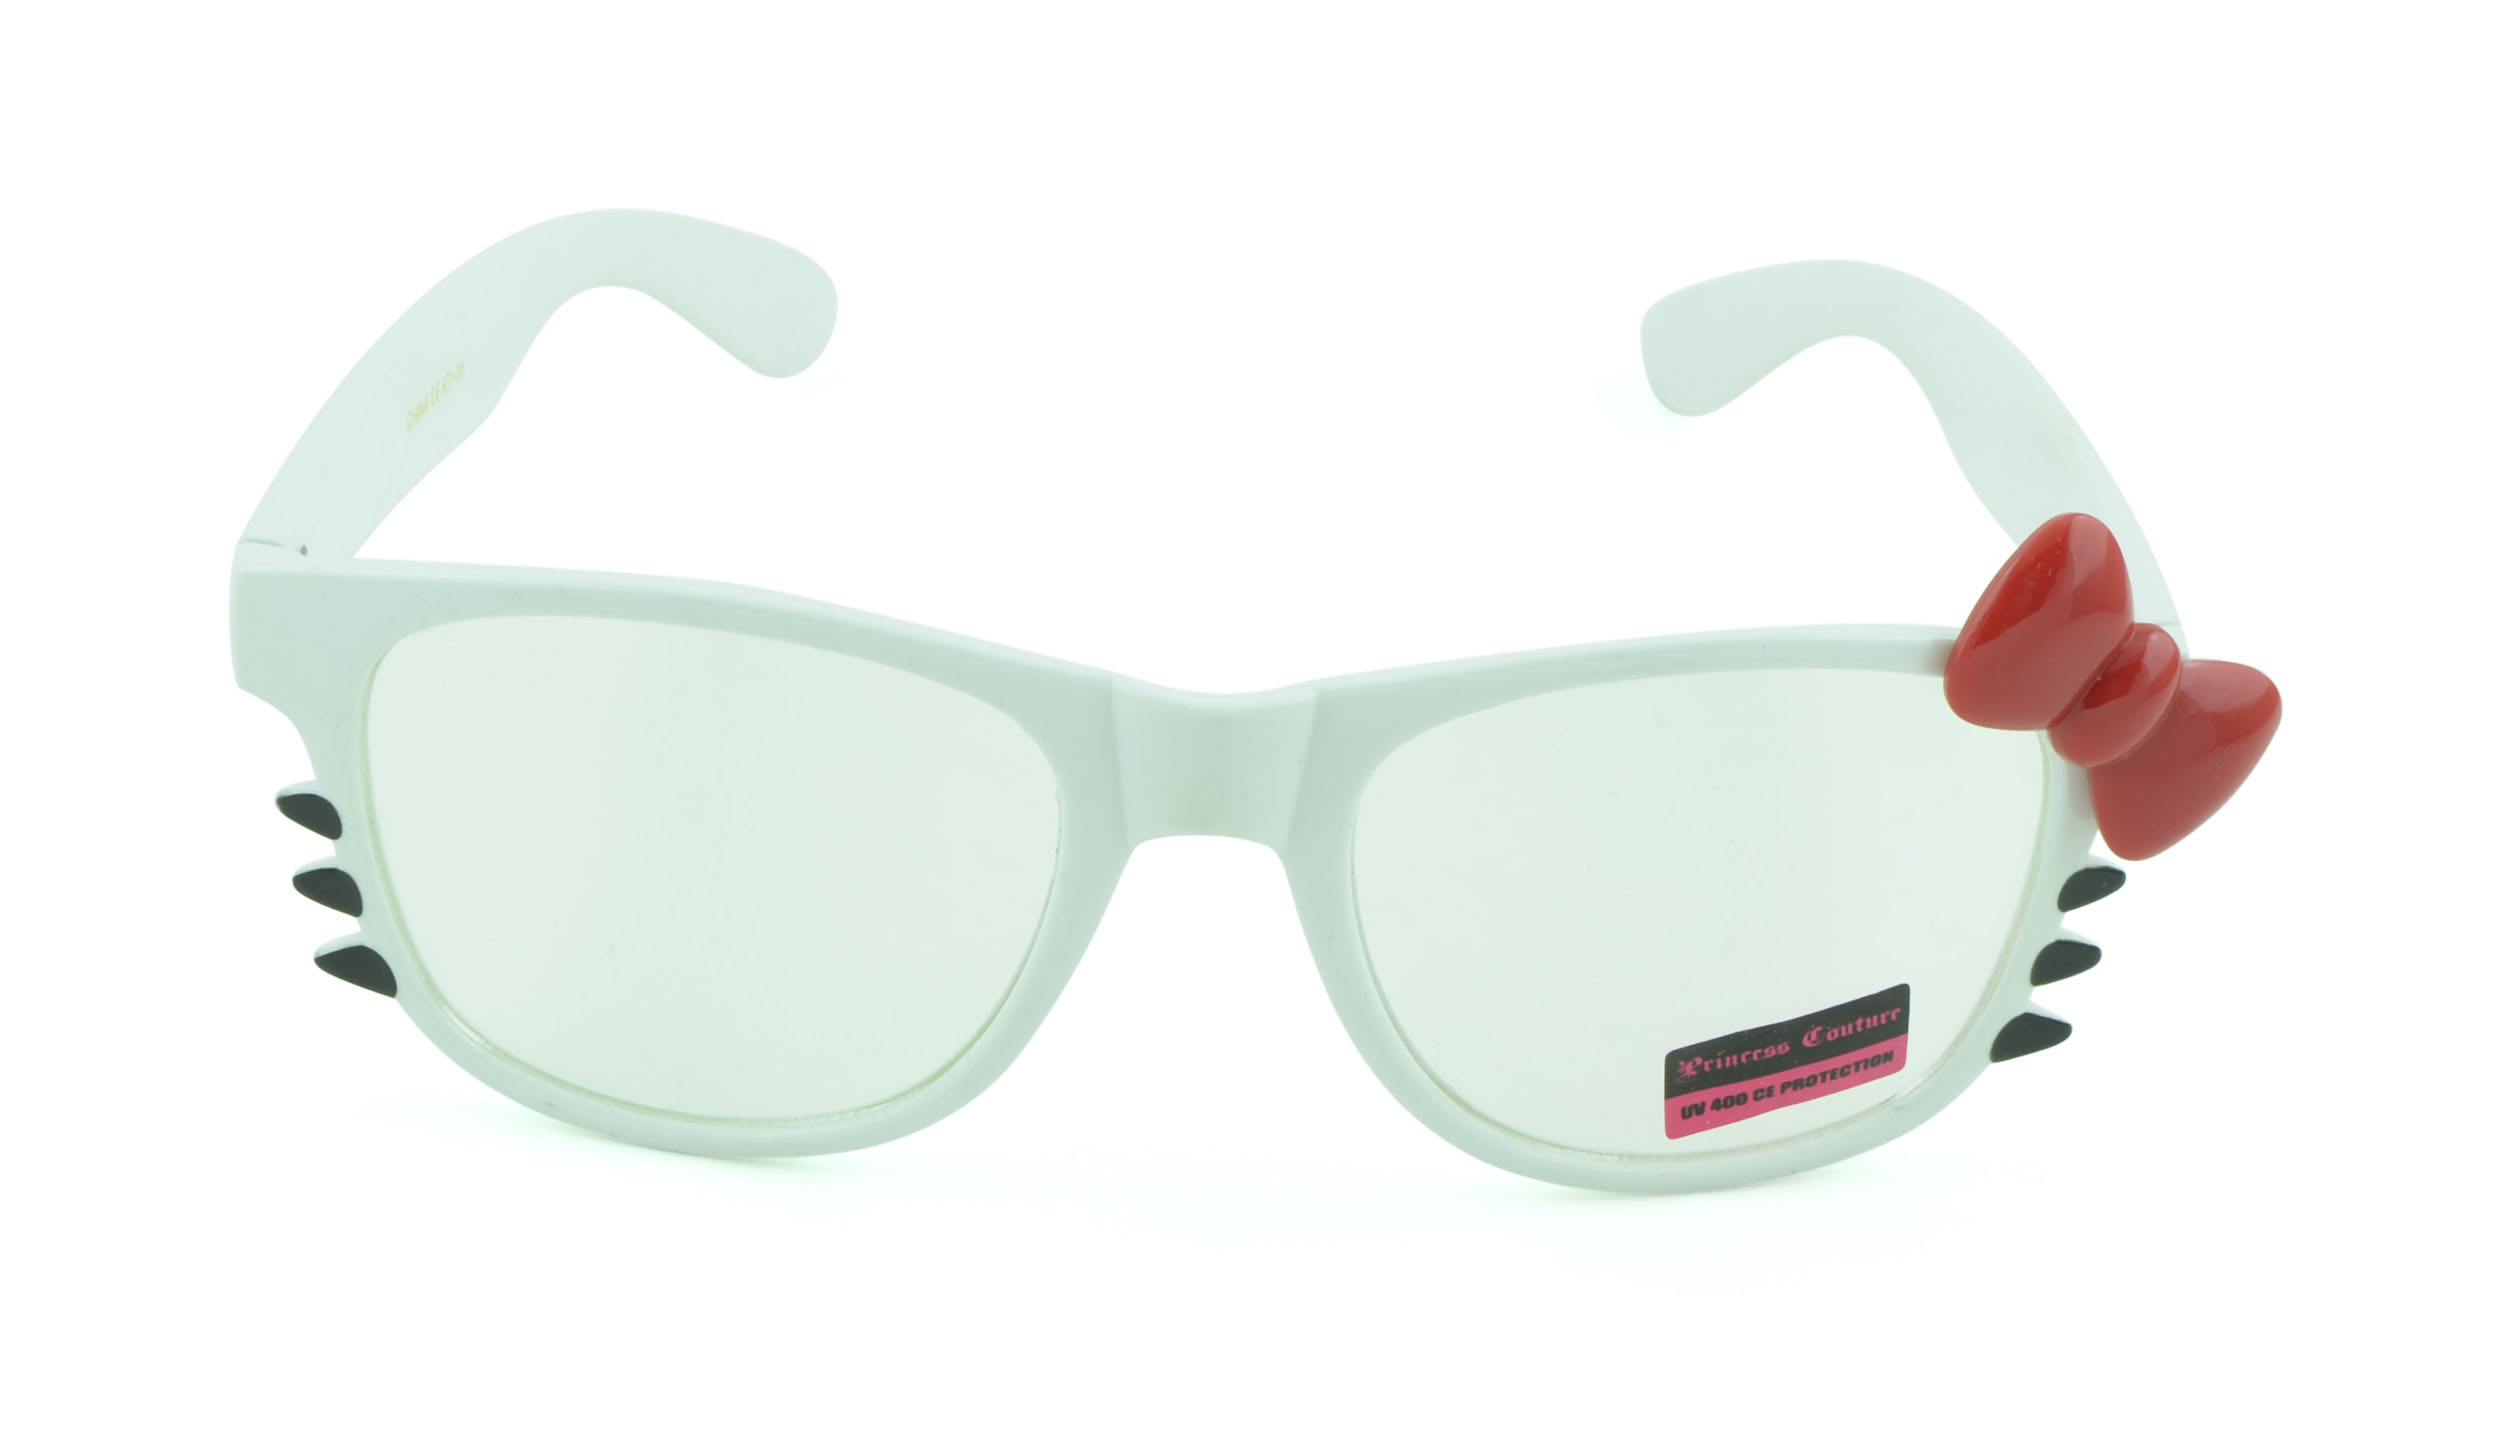 Belle Donne-Women's Kitty Cat Style Sunglasses | Whiskers and Bow Accent-White3